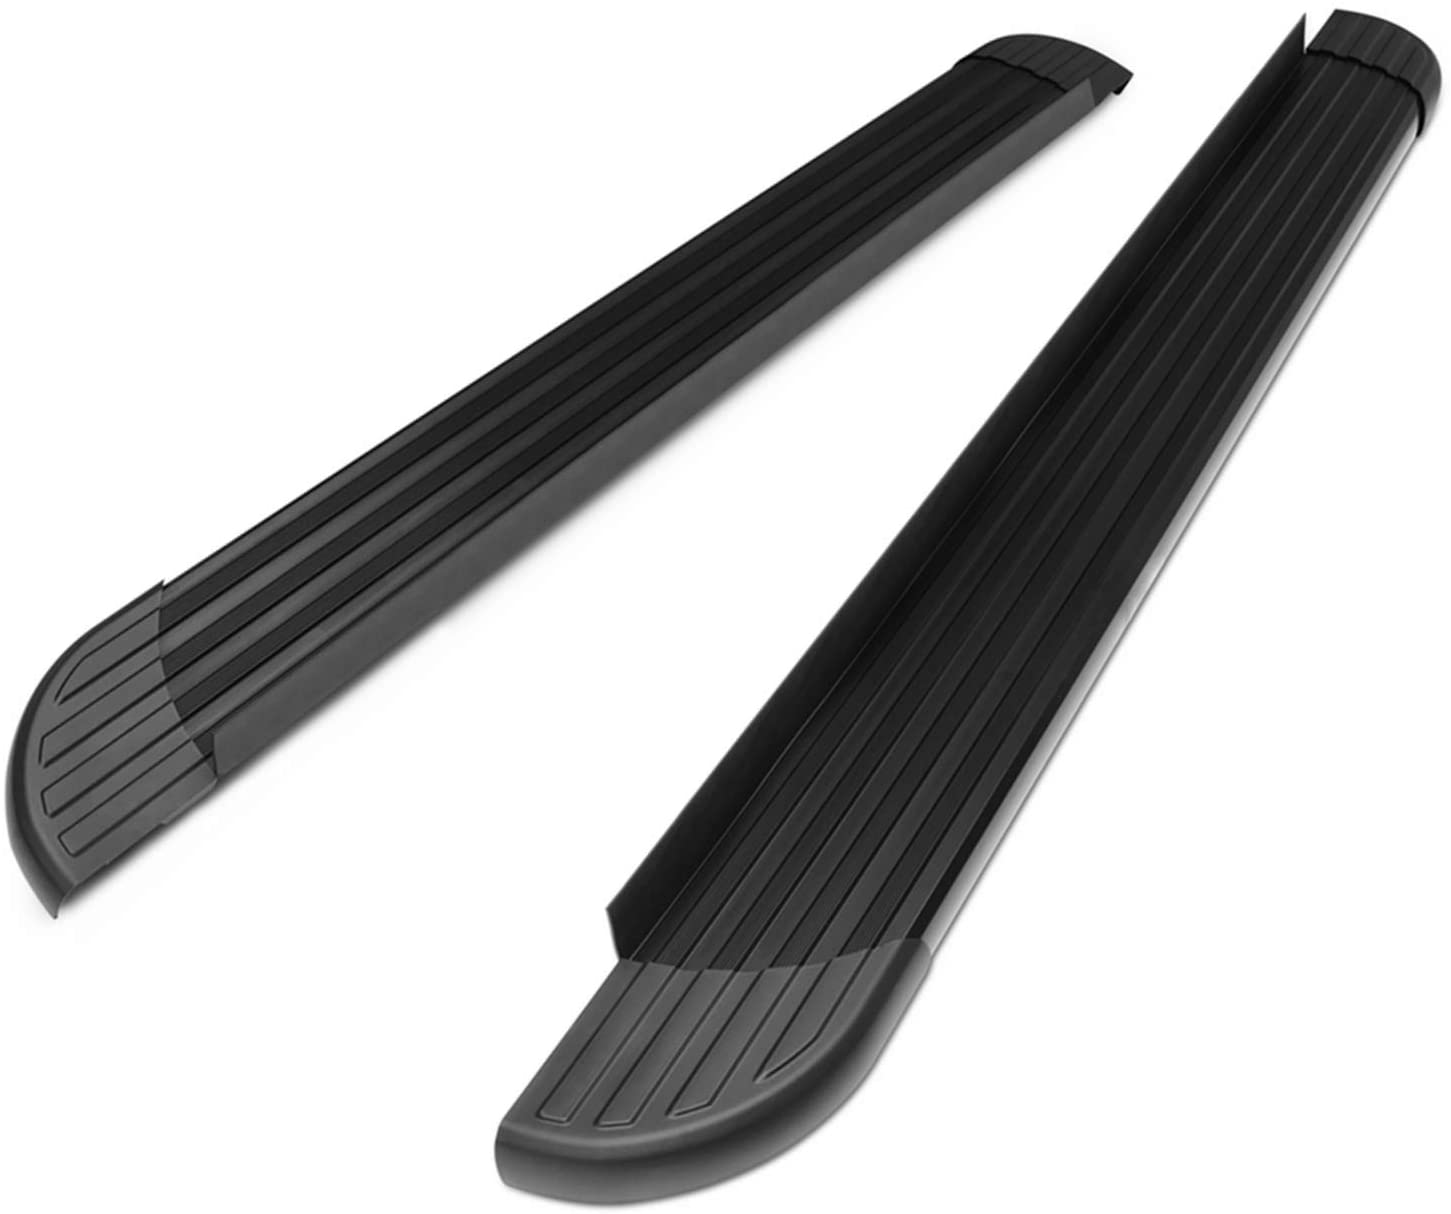 TAC Running Boards Side Steps Fit 2011-2020 Jeep Grand Cherokee (Excluding Limited X, High Altitude, SRT, SRT8, Trackhawk, Trailhawk, Summit) Value Aluminum SUV Black Nerf Bars Rock Panel 2Pcs